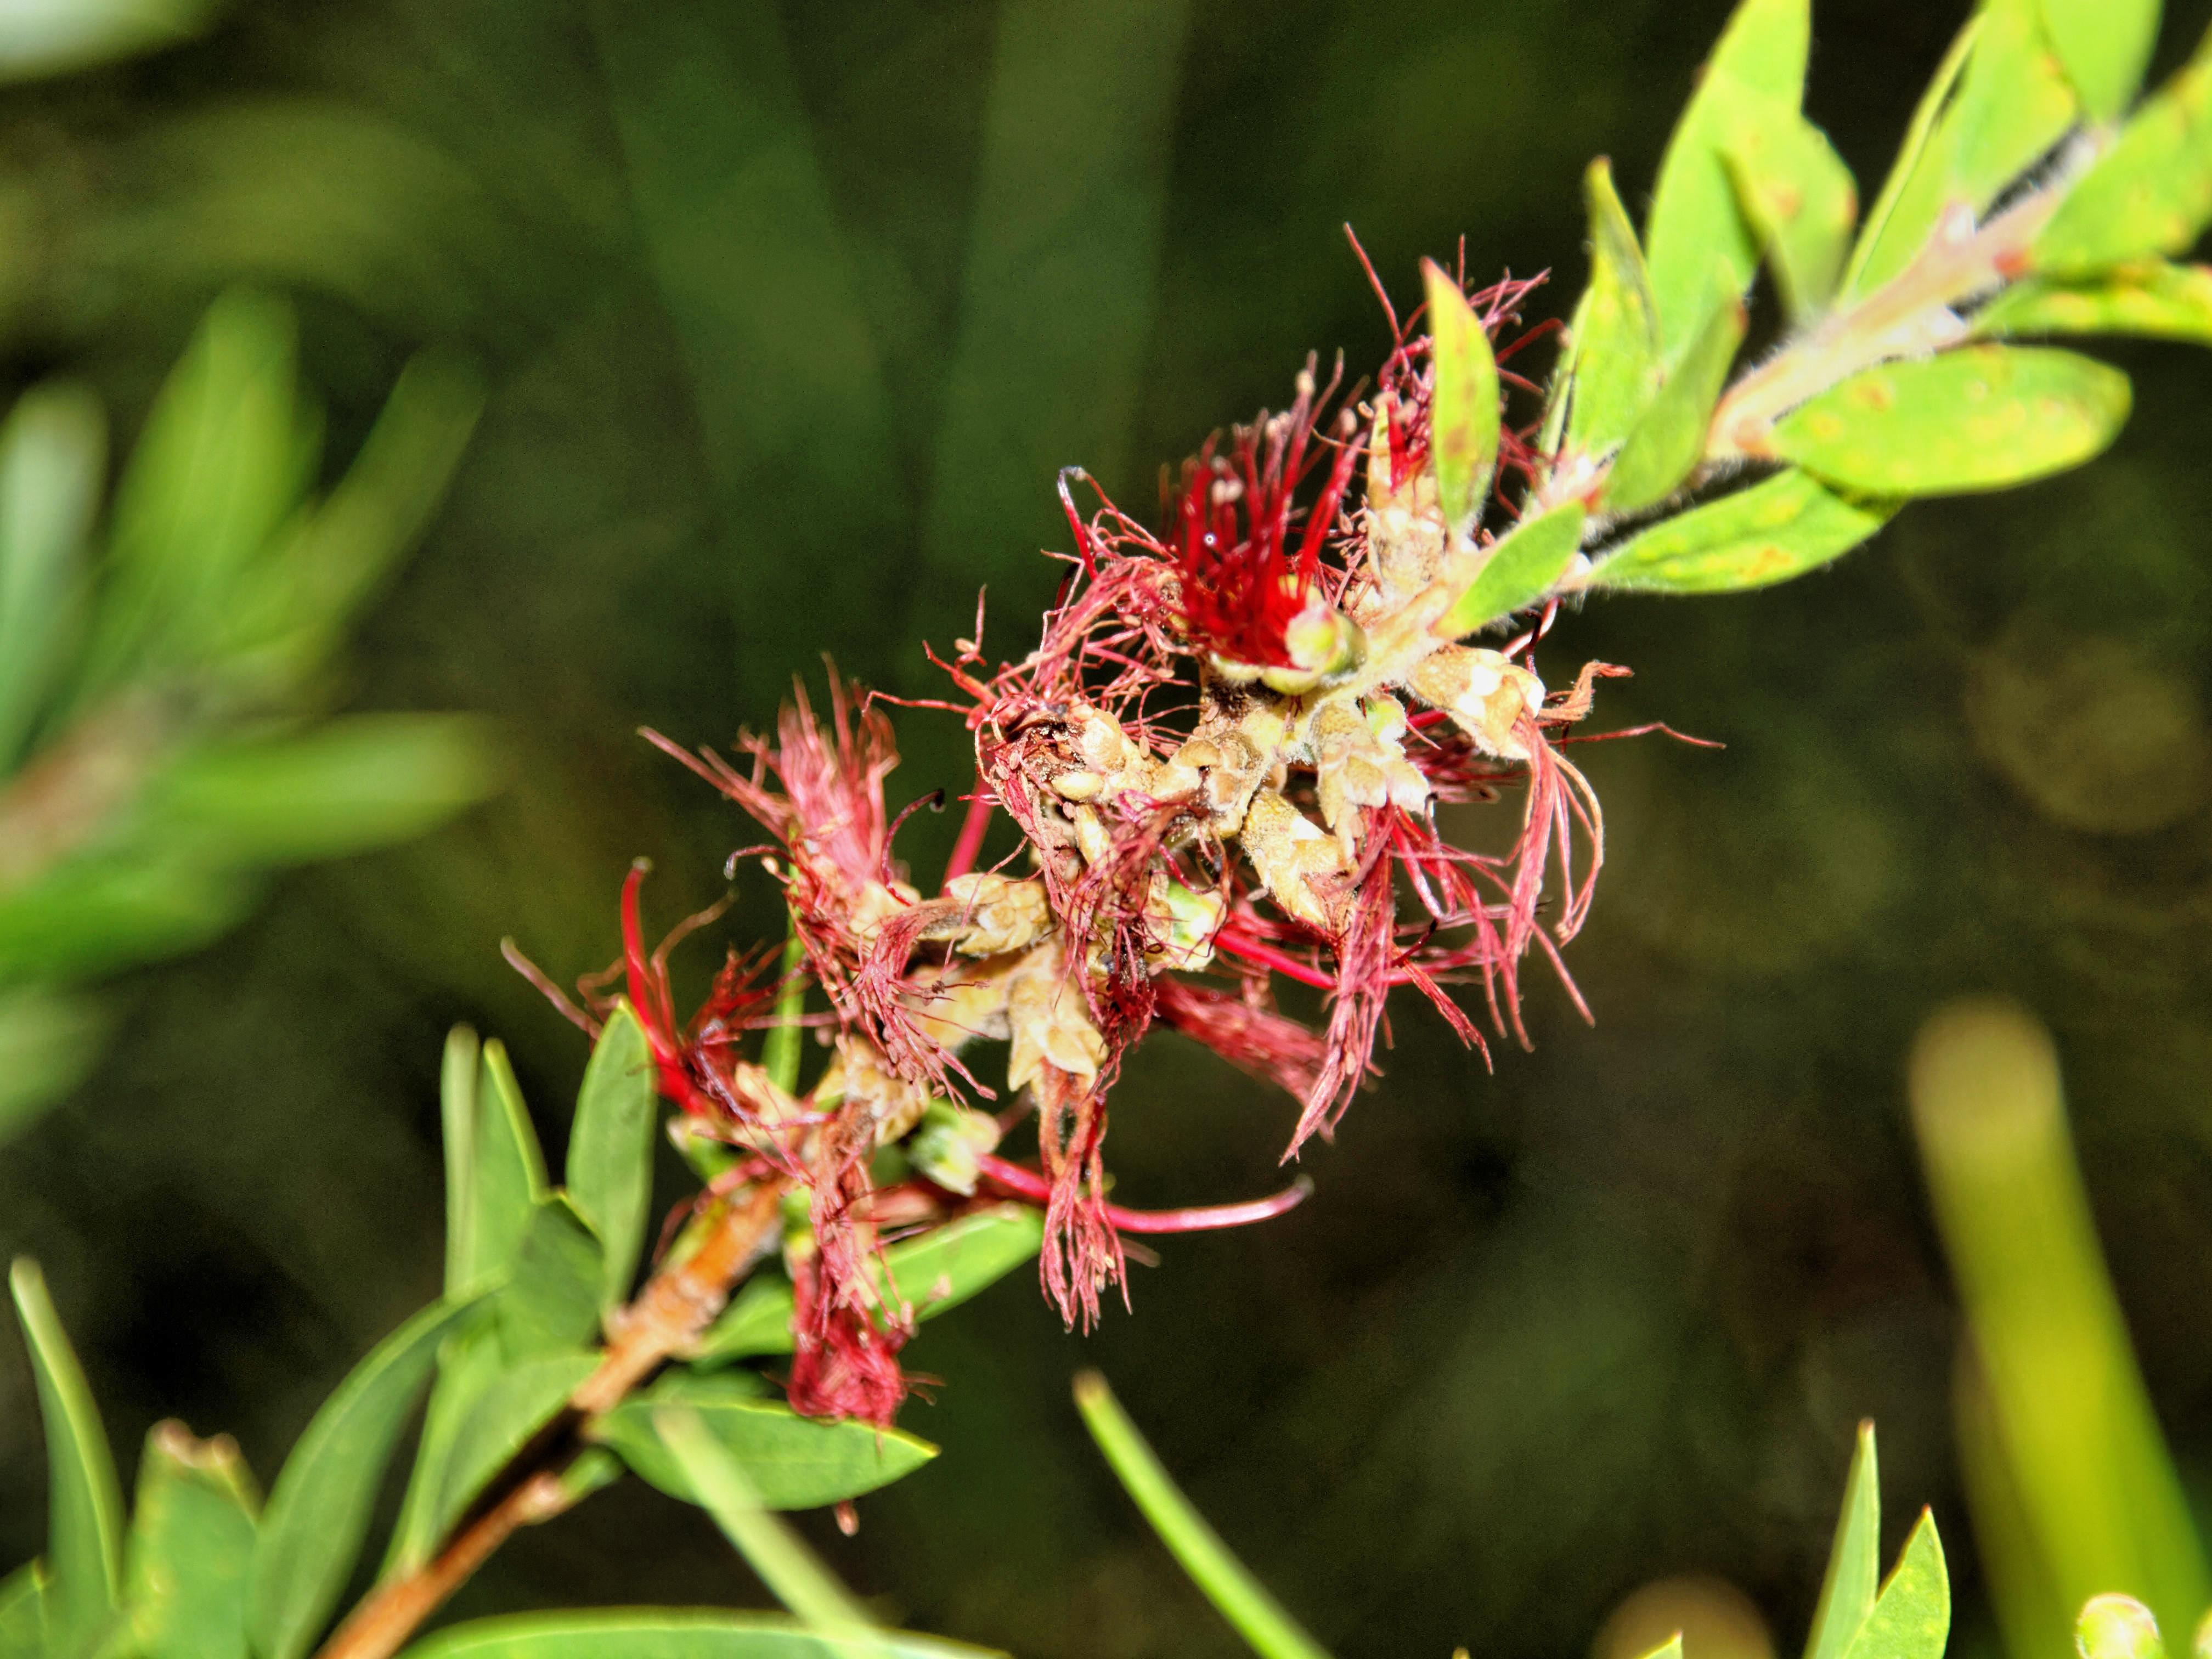 This should be Callistemon.jpeg.  Is it missing?